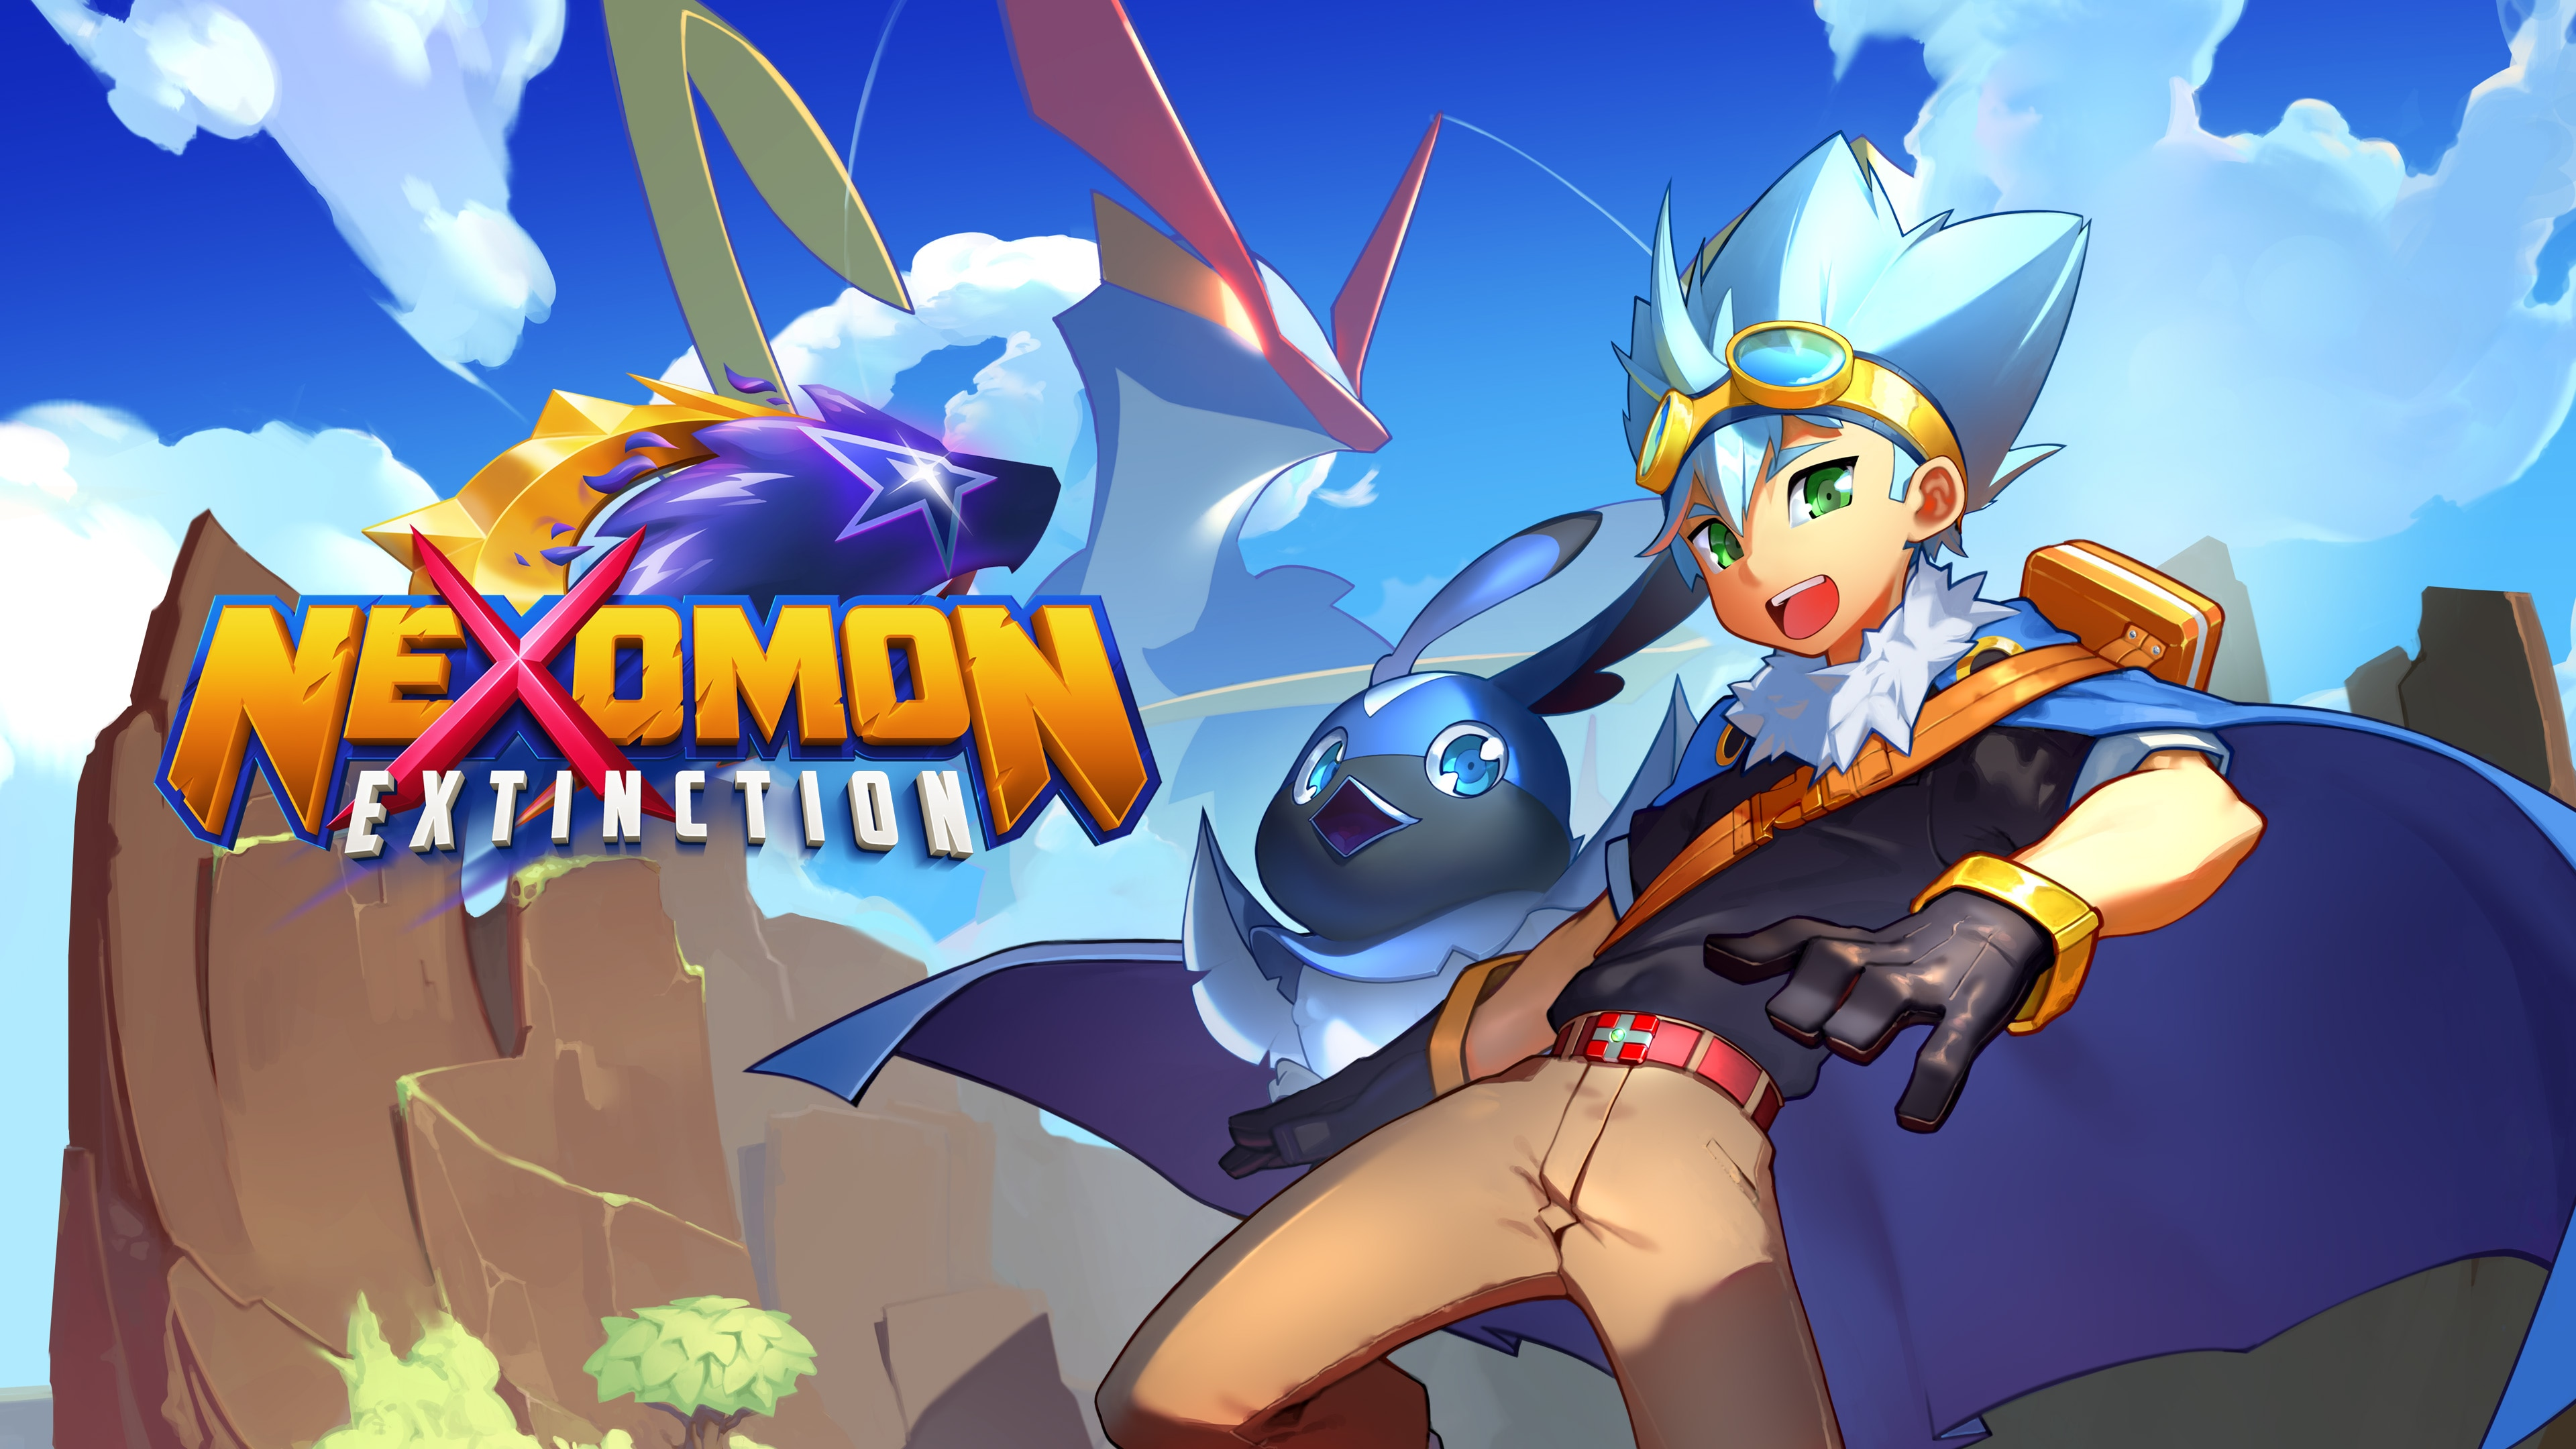 Nexomon: Extinction (English, Korean, Thai, Japanese)